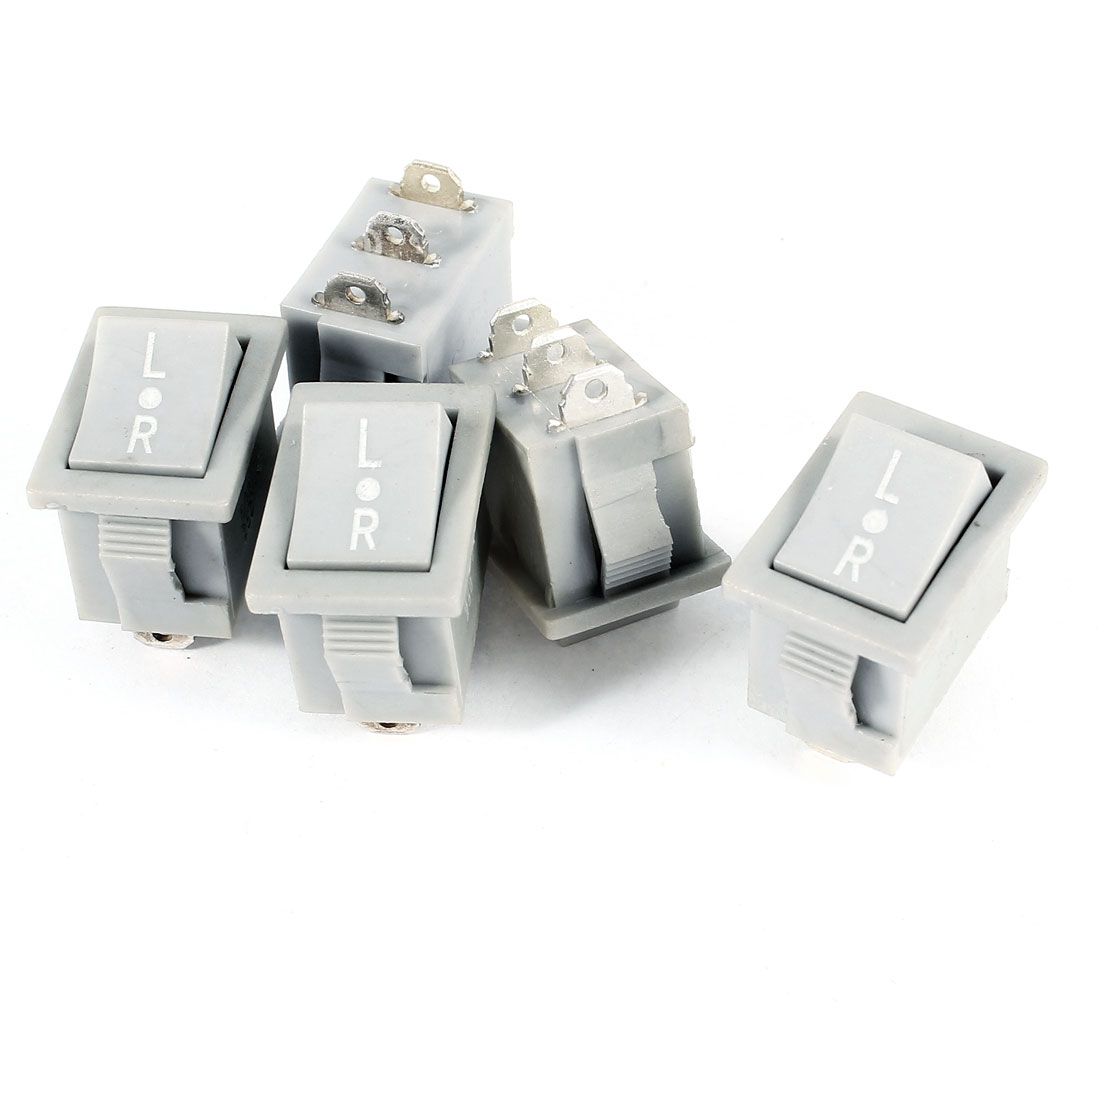 5 Pcs KCD3-B AC 250V 6A 12A 3Pin SPDT On/Off/On Rocker Switch Gray